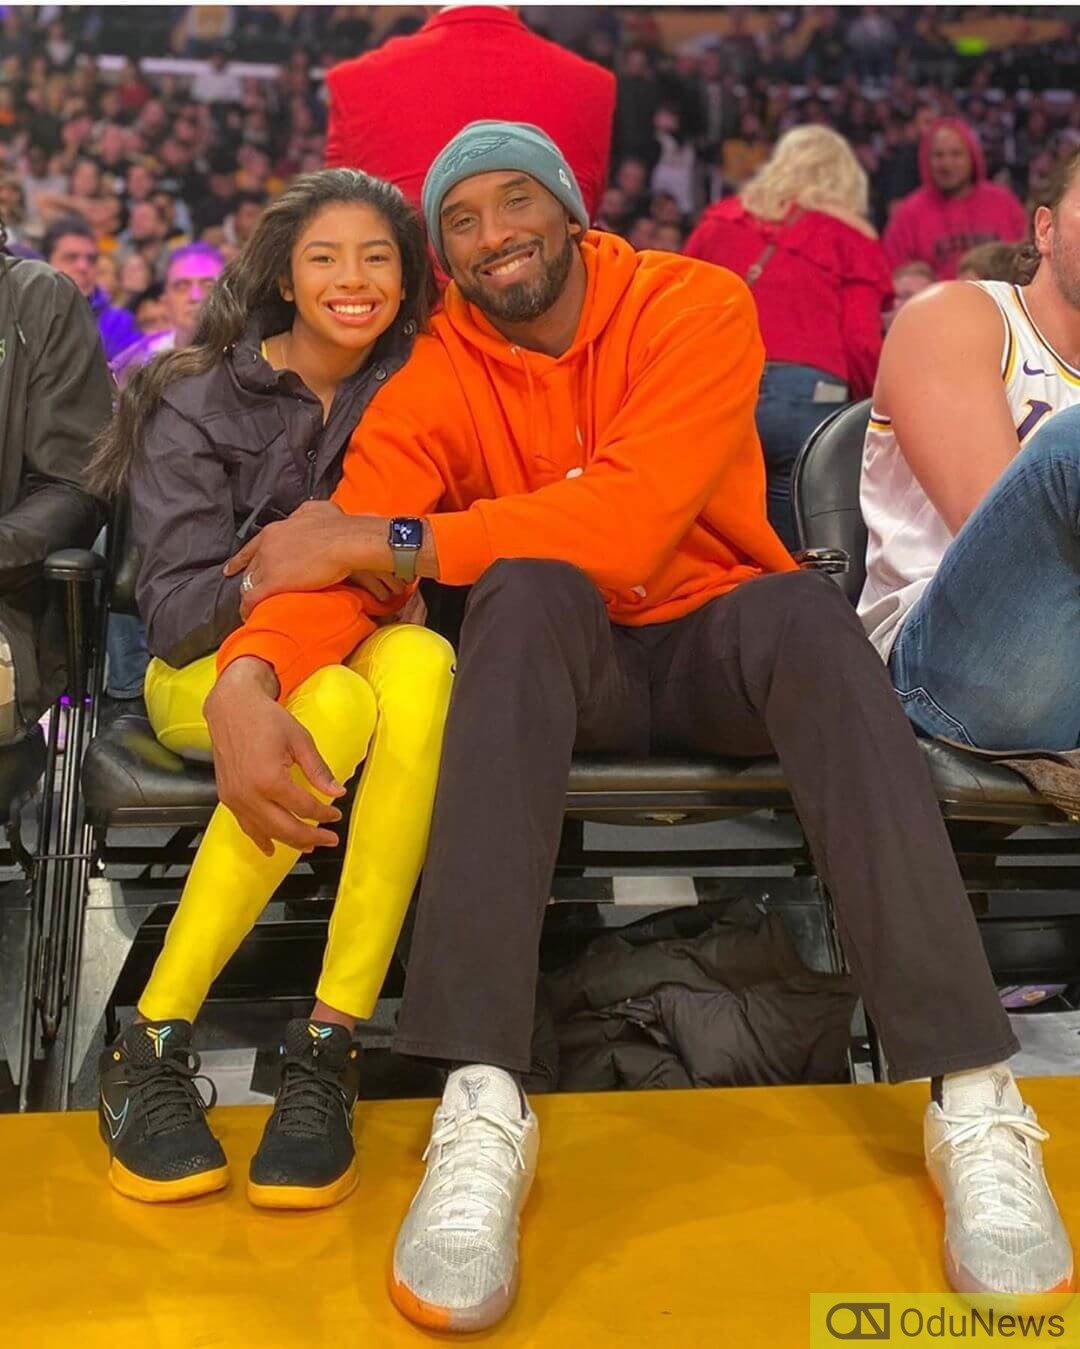 Kobe Bryant and his daughter Gianni died alongside others in a helicopter crash